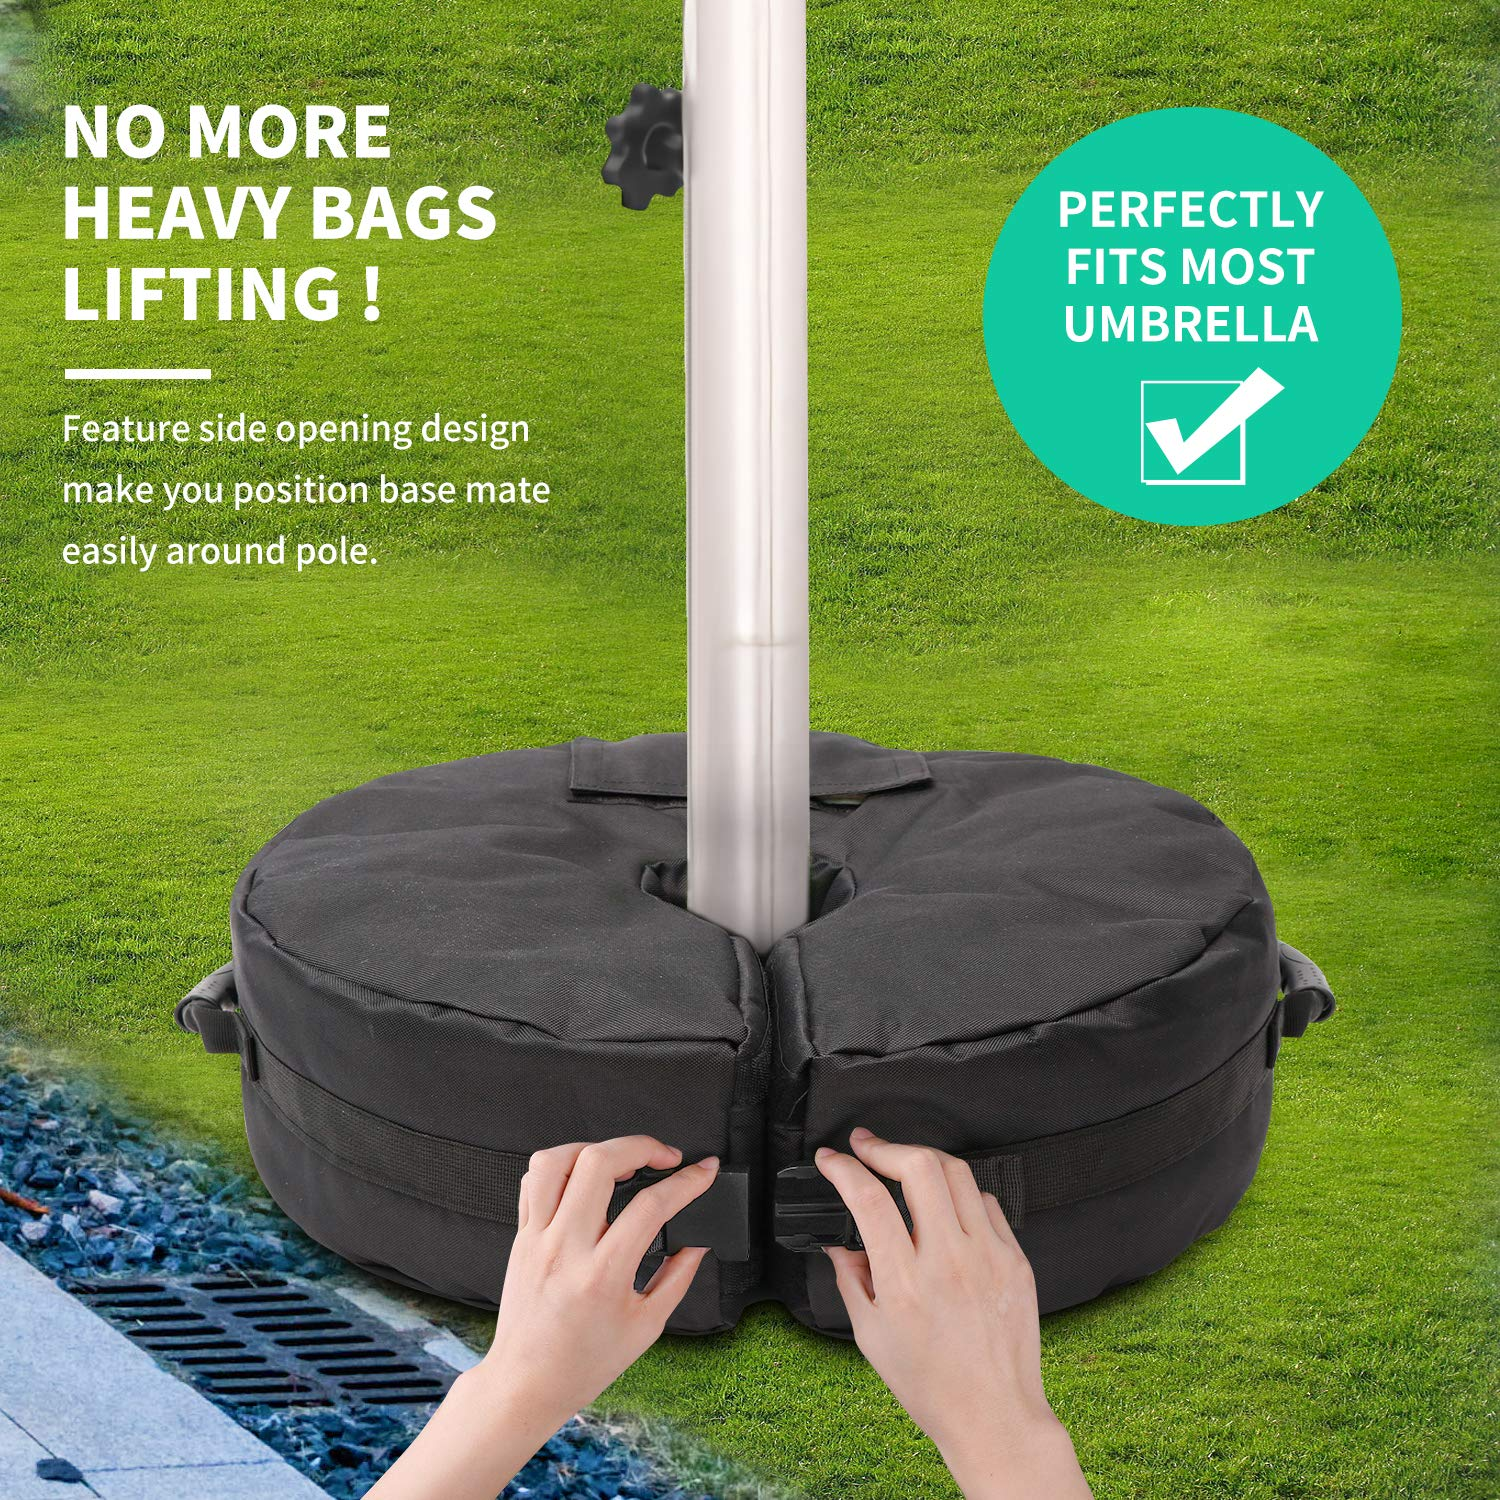 Umbrella Base Weight Bag 88lb, 18 Round Detachable Weatherproof Umbrella Weights Sand Bags for Outdoor Patio, Offset, and Cantilever Umbrellas with Large Opening 2 Handles Sand Not Included